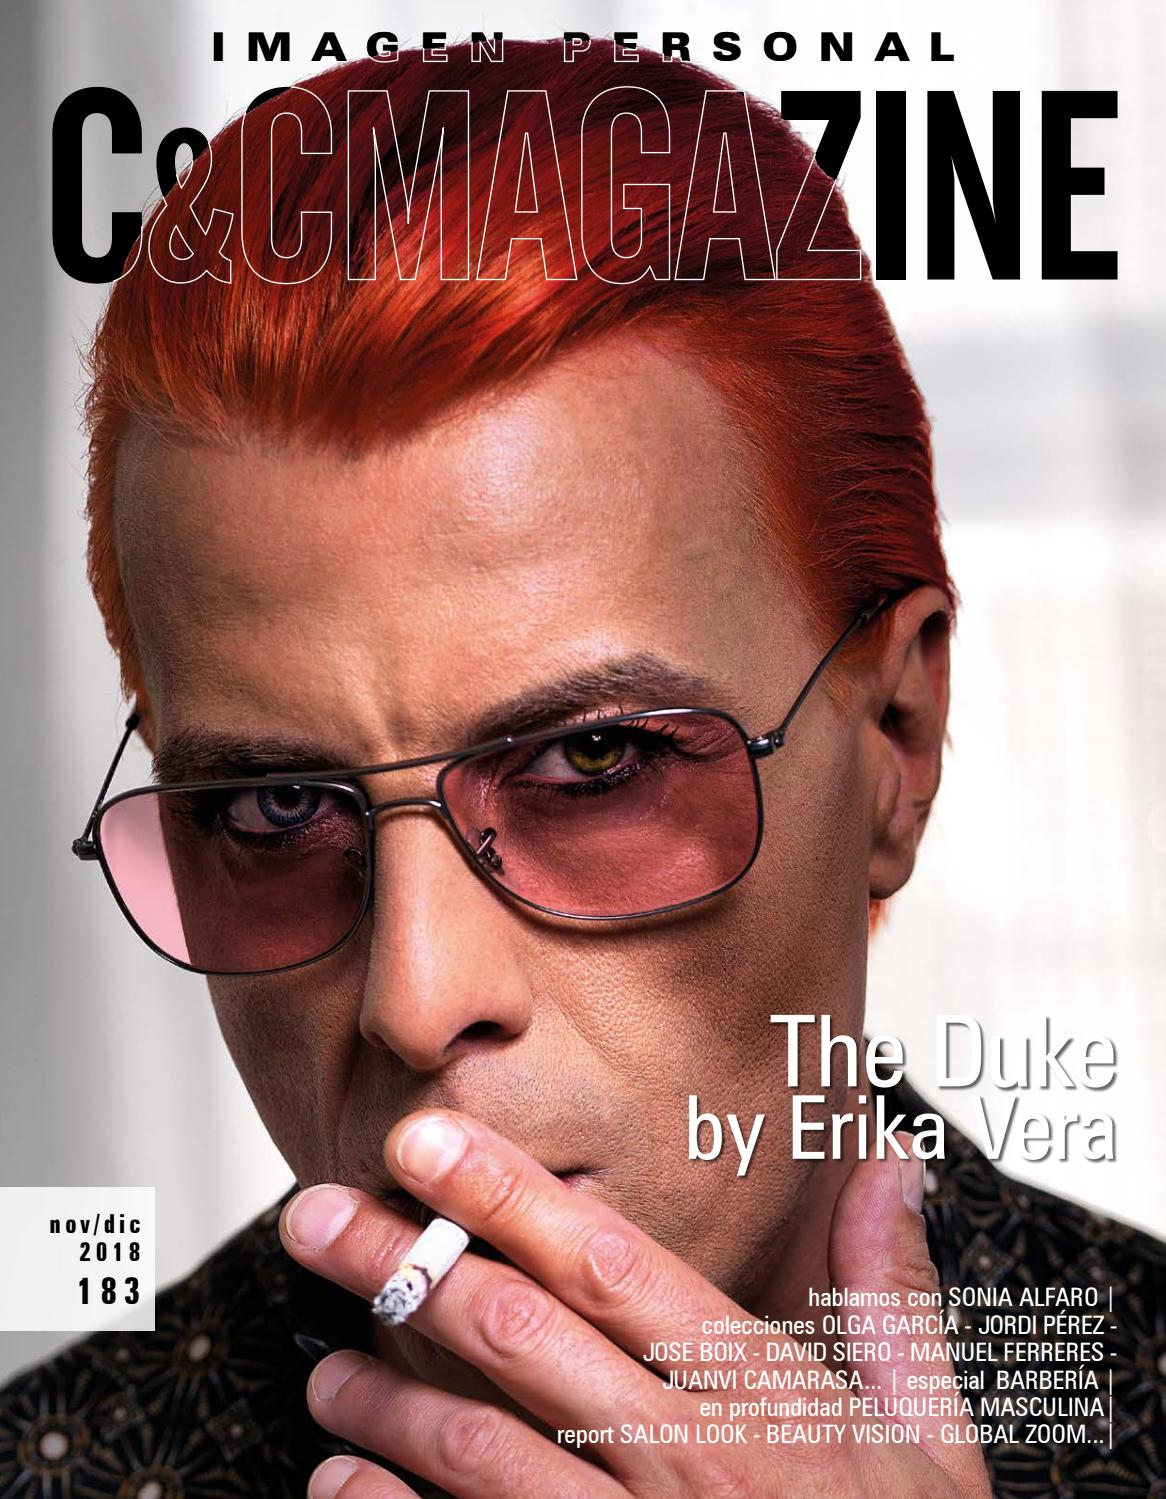 d0d5b9526 183 ccmagazine by C&C Magazine - issuu